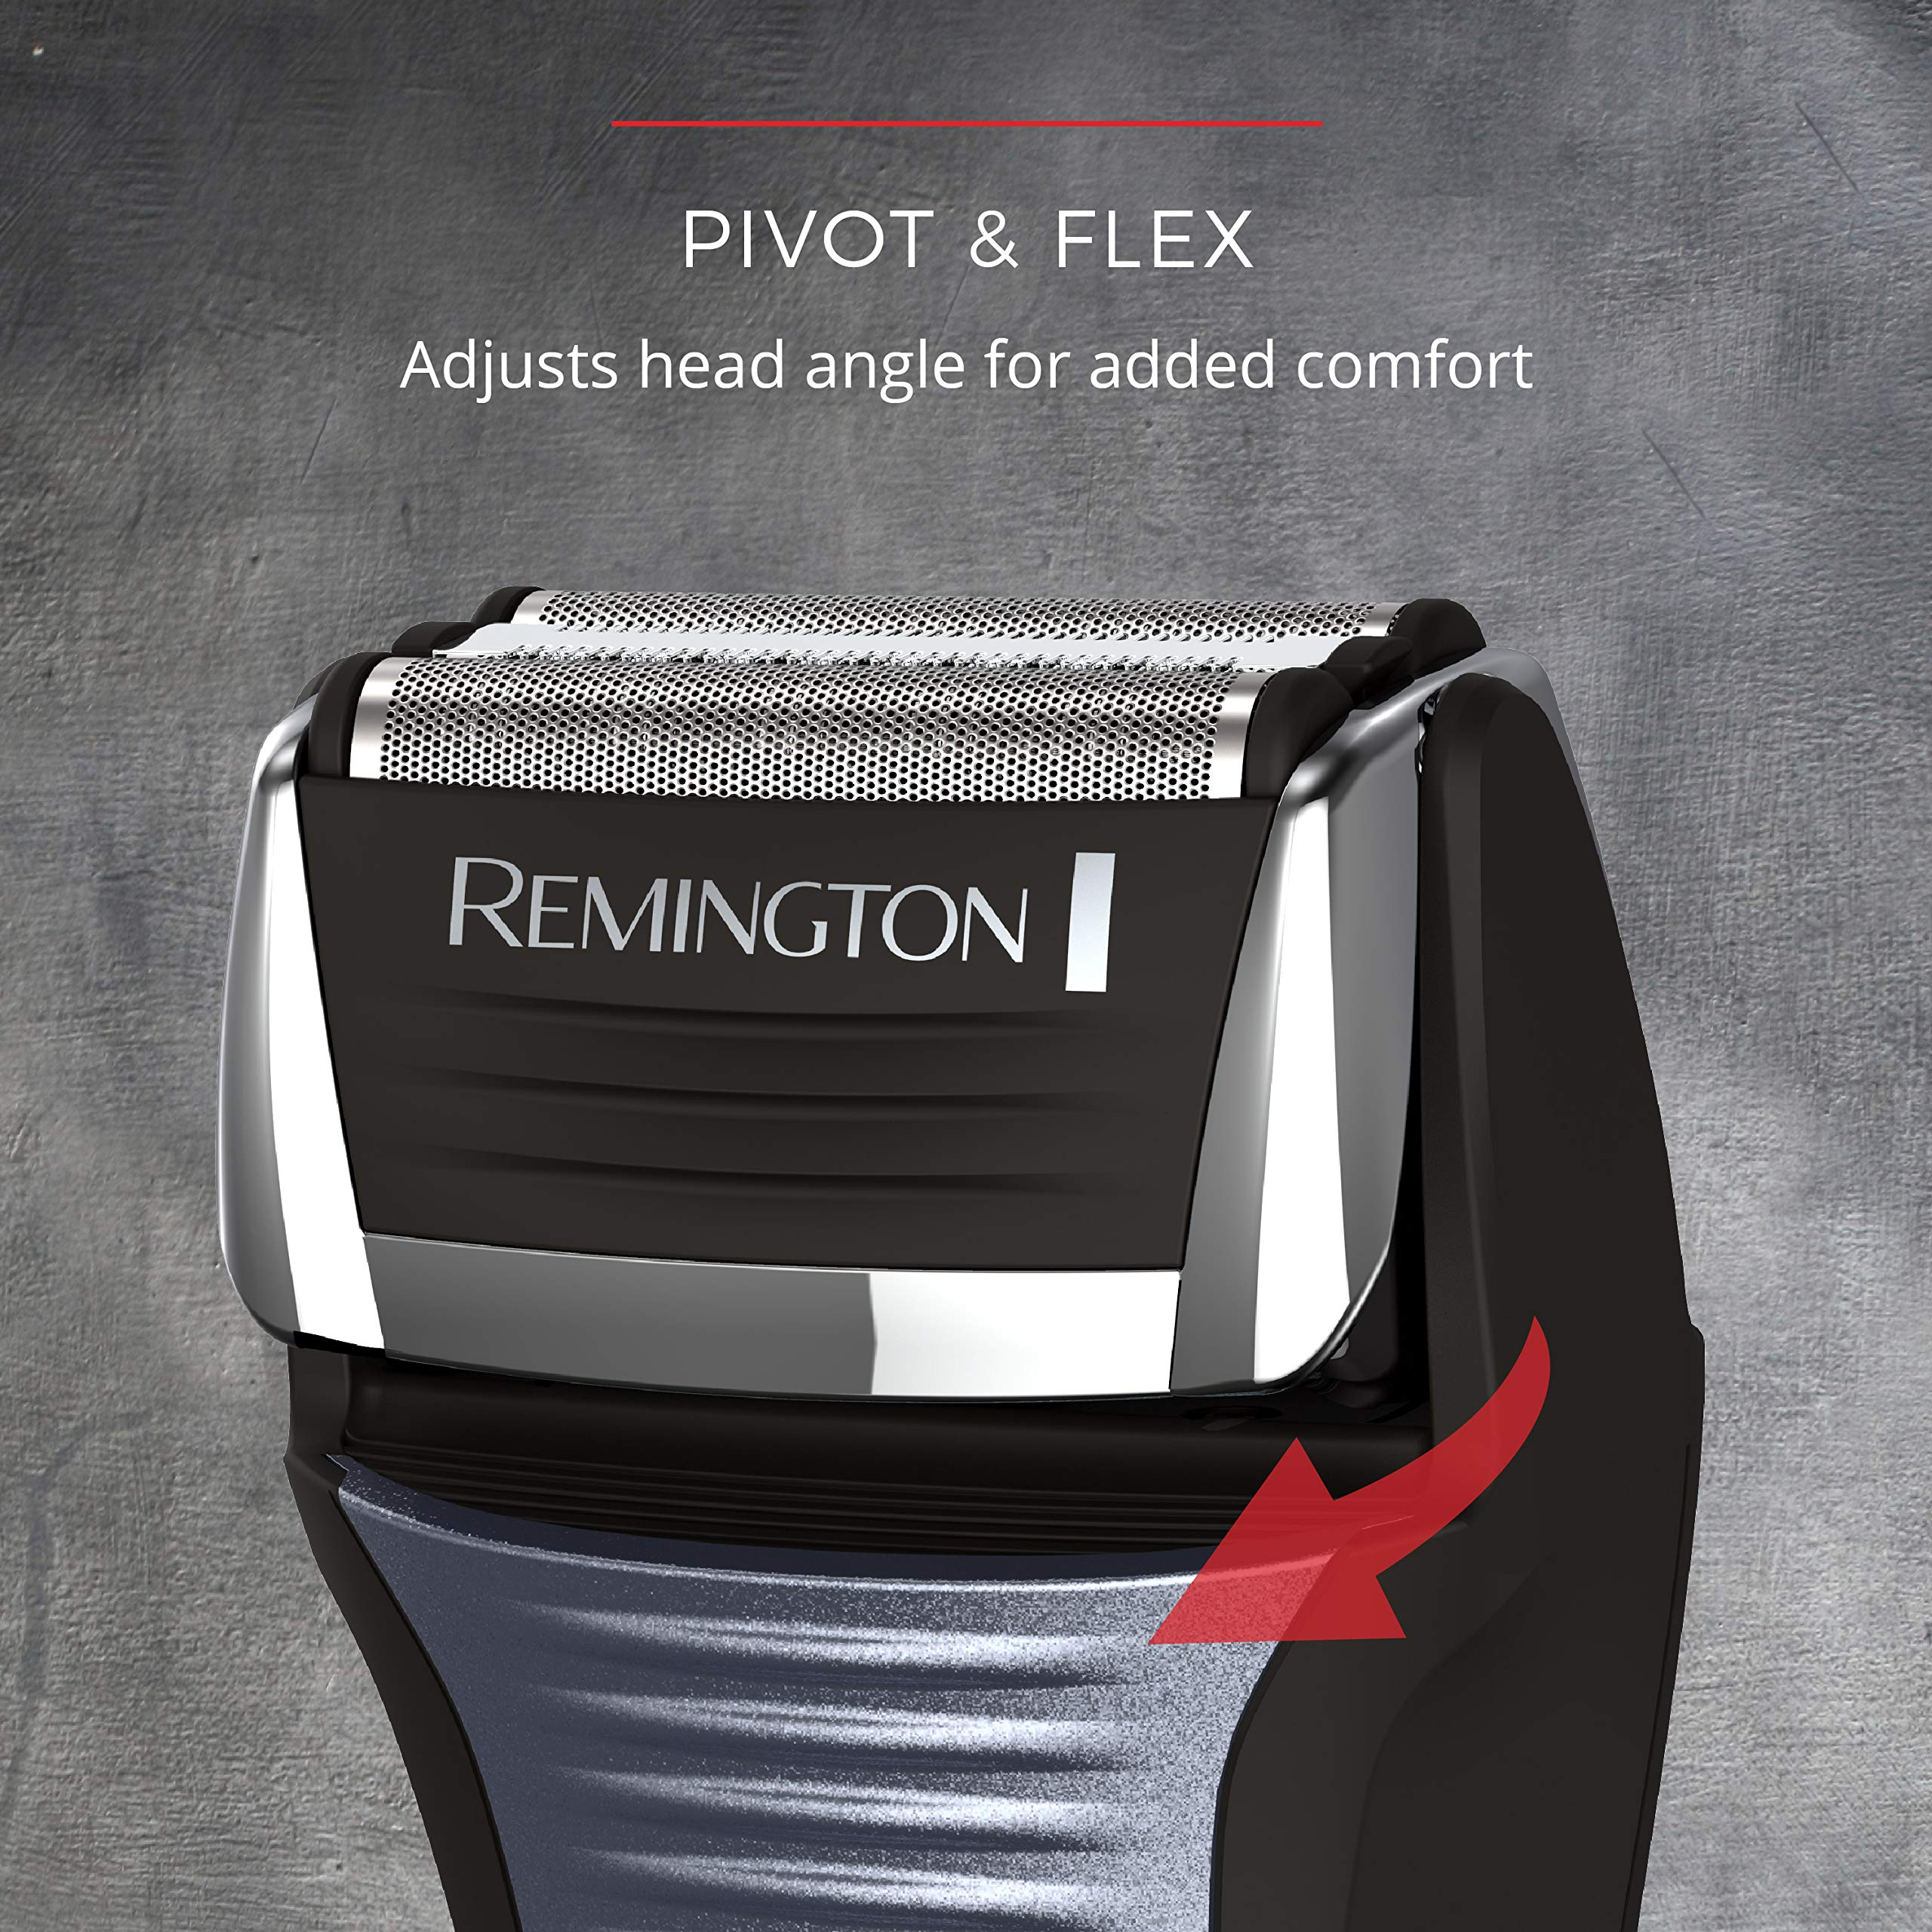 Remington F5-5800 Foil Shaver, Men's Electric Razor, Electric Shaver, Black by Remington (Image #3)